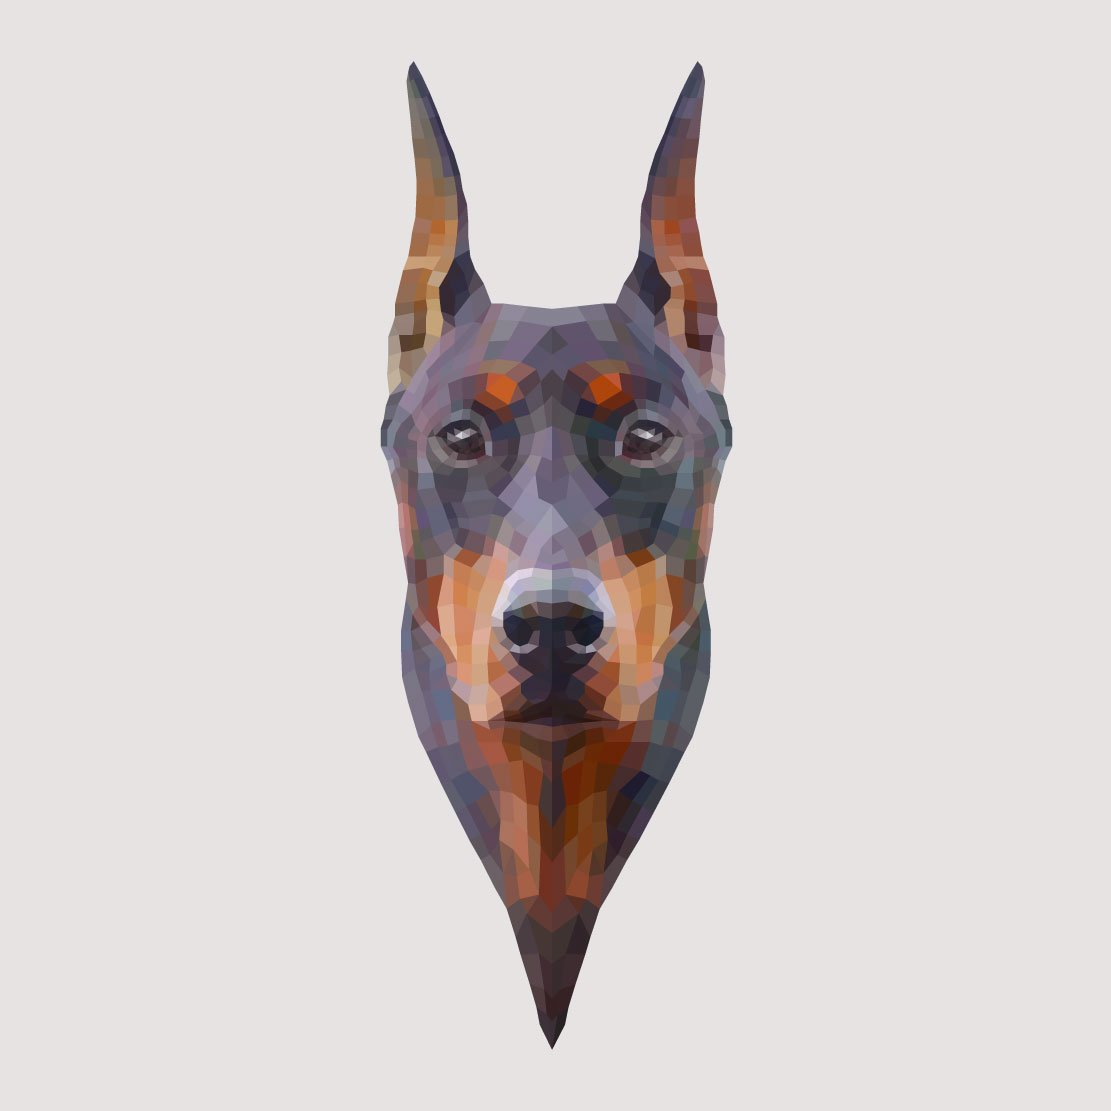 Doberman pinscher made of geometric shapes watercolor decal five inch tall full color decal for indoor or outdoor use car truck laptop macbook